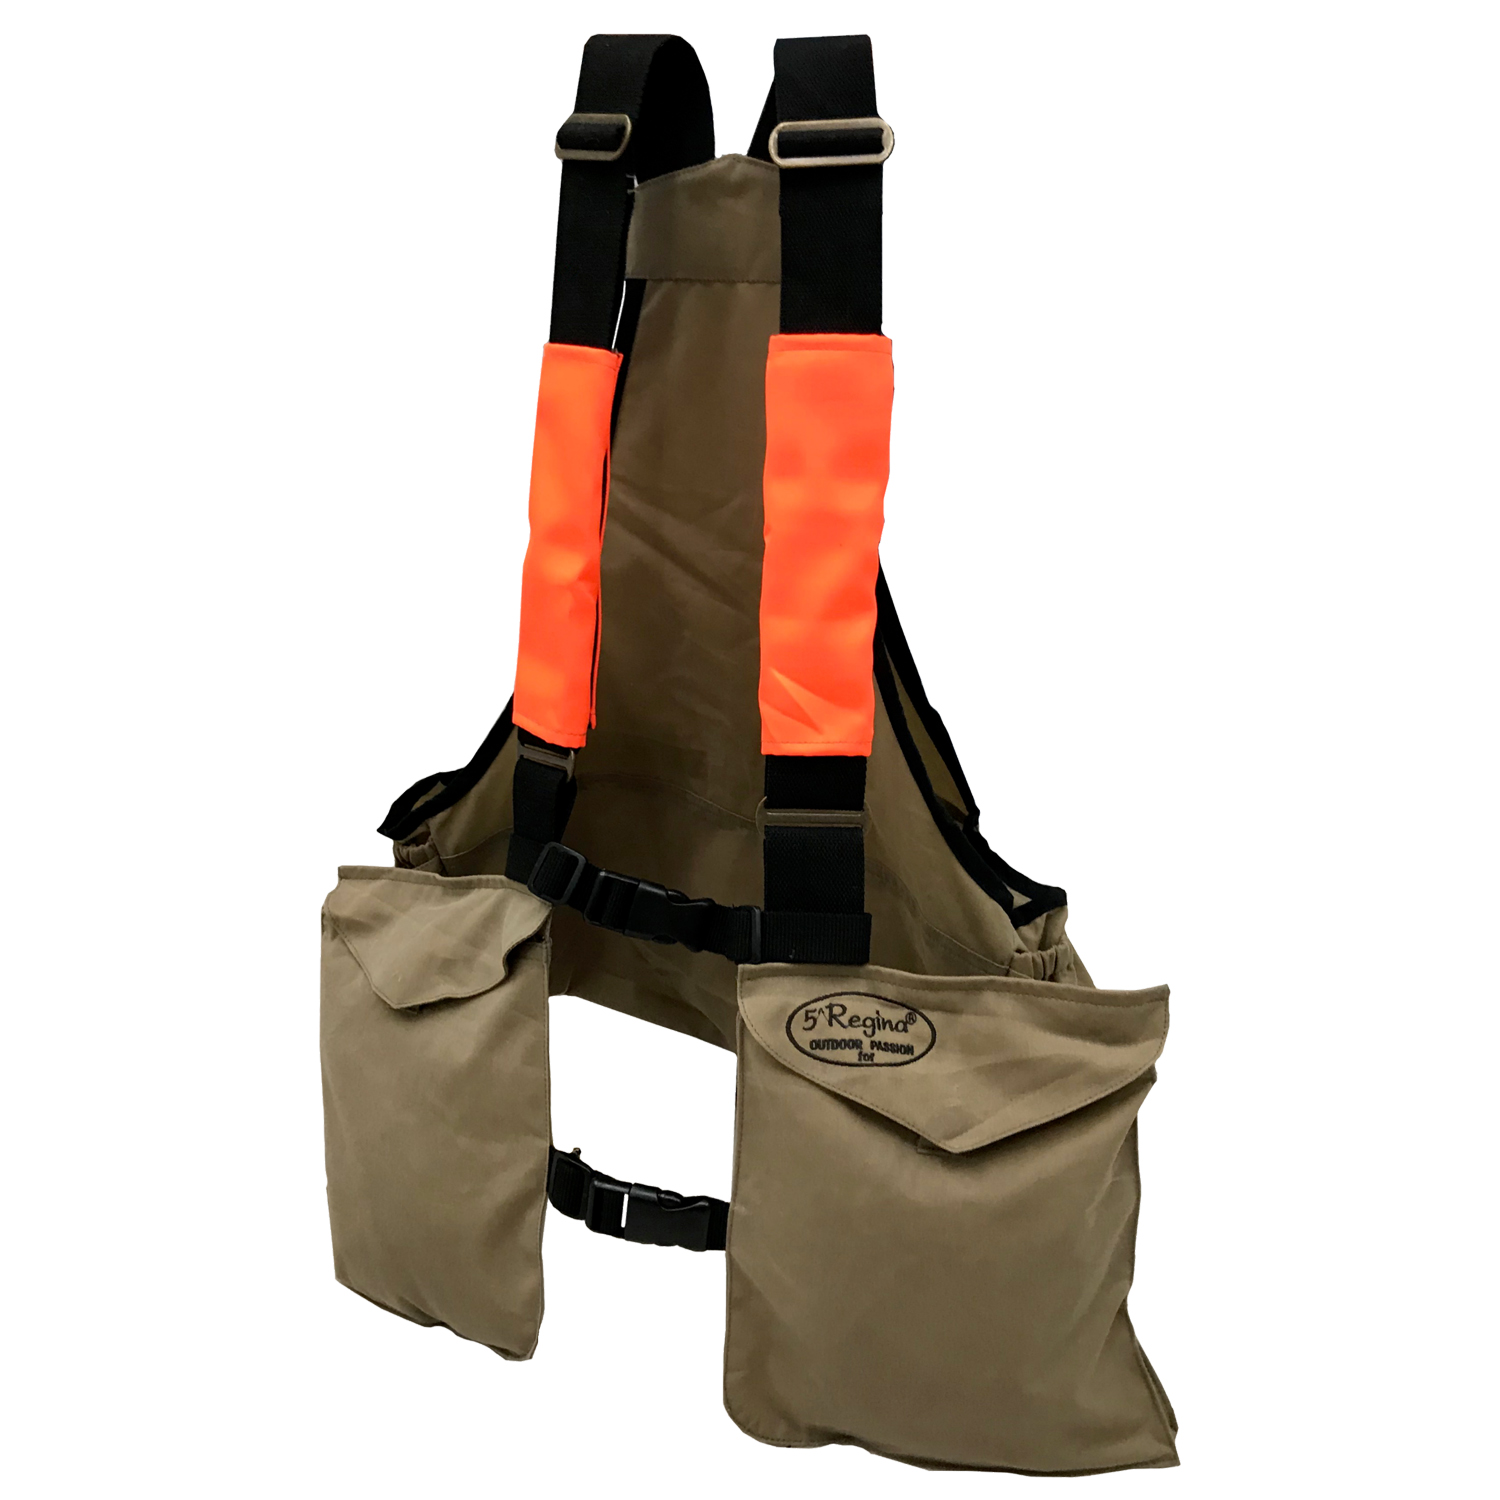 Trisacca orange bottle holder hunting pockets durable abrasion the bag